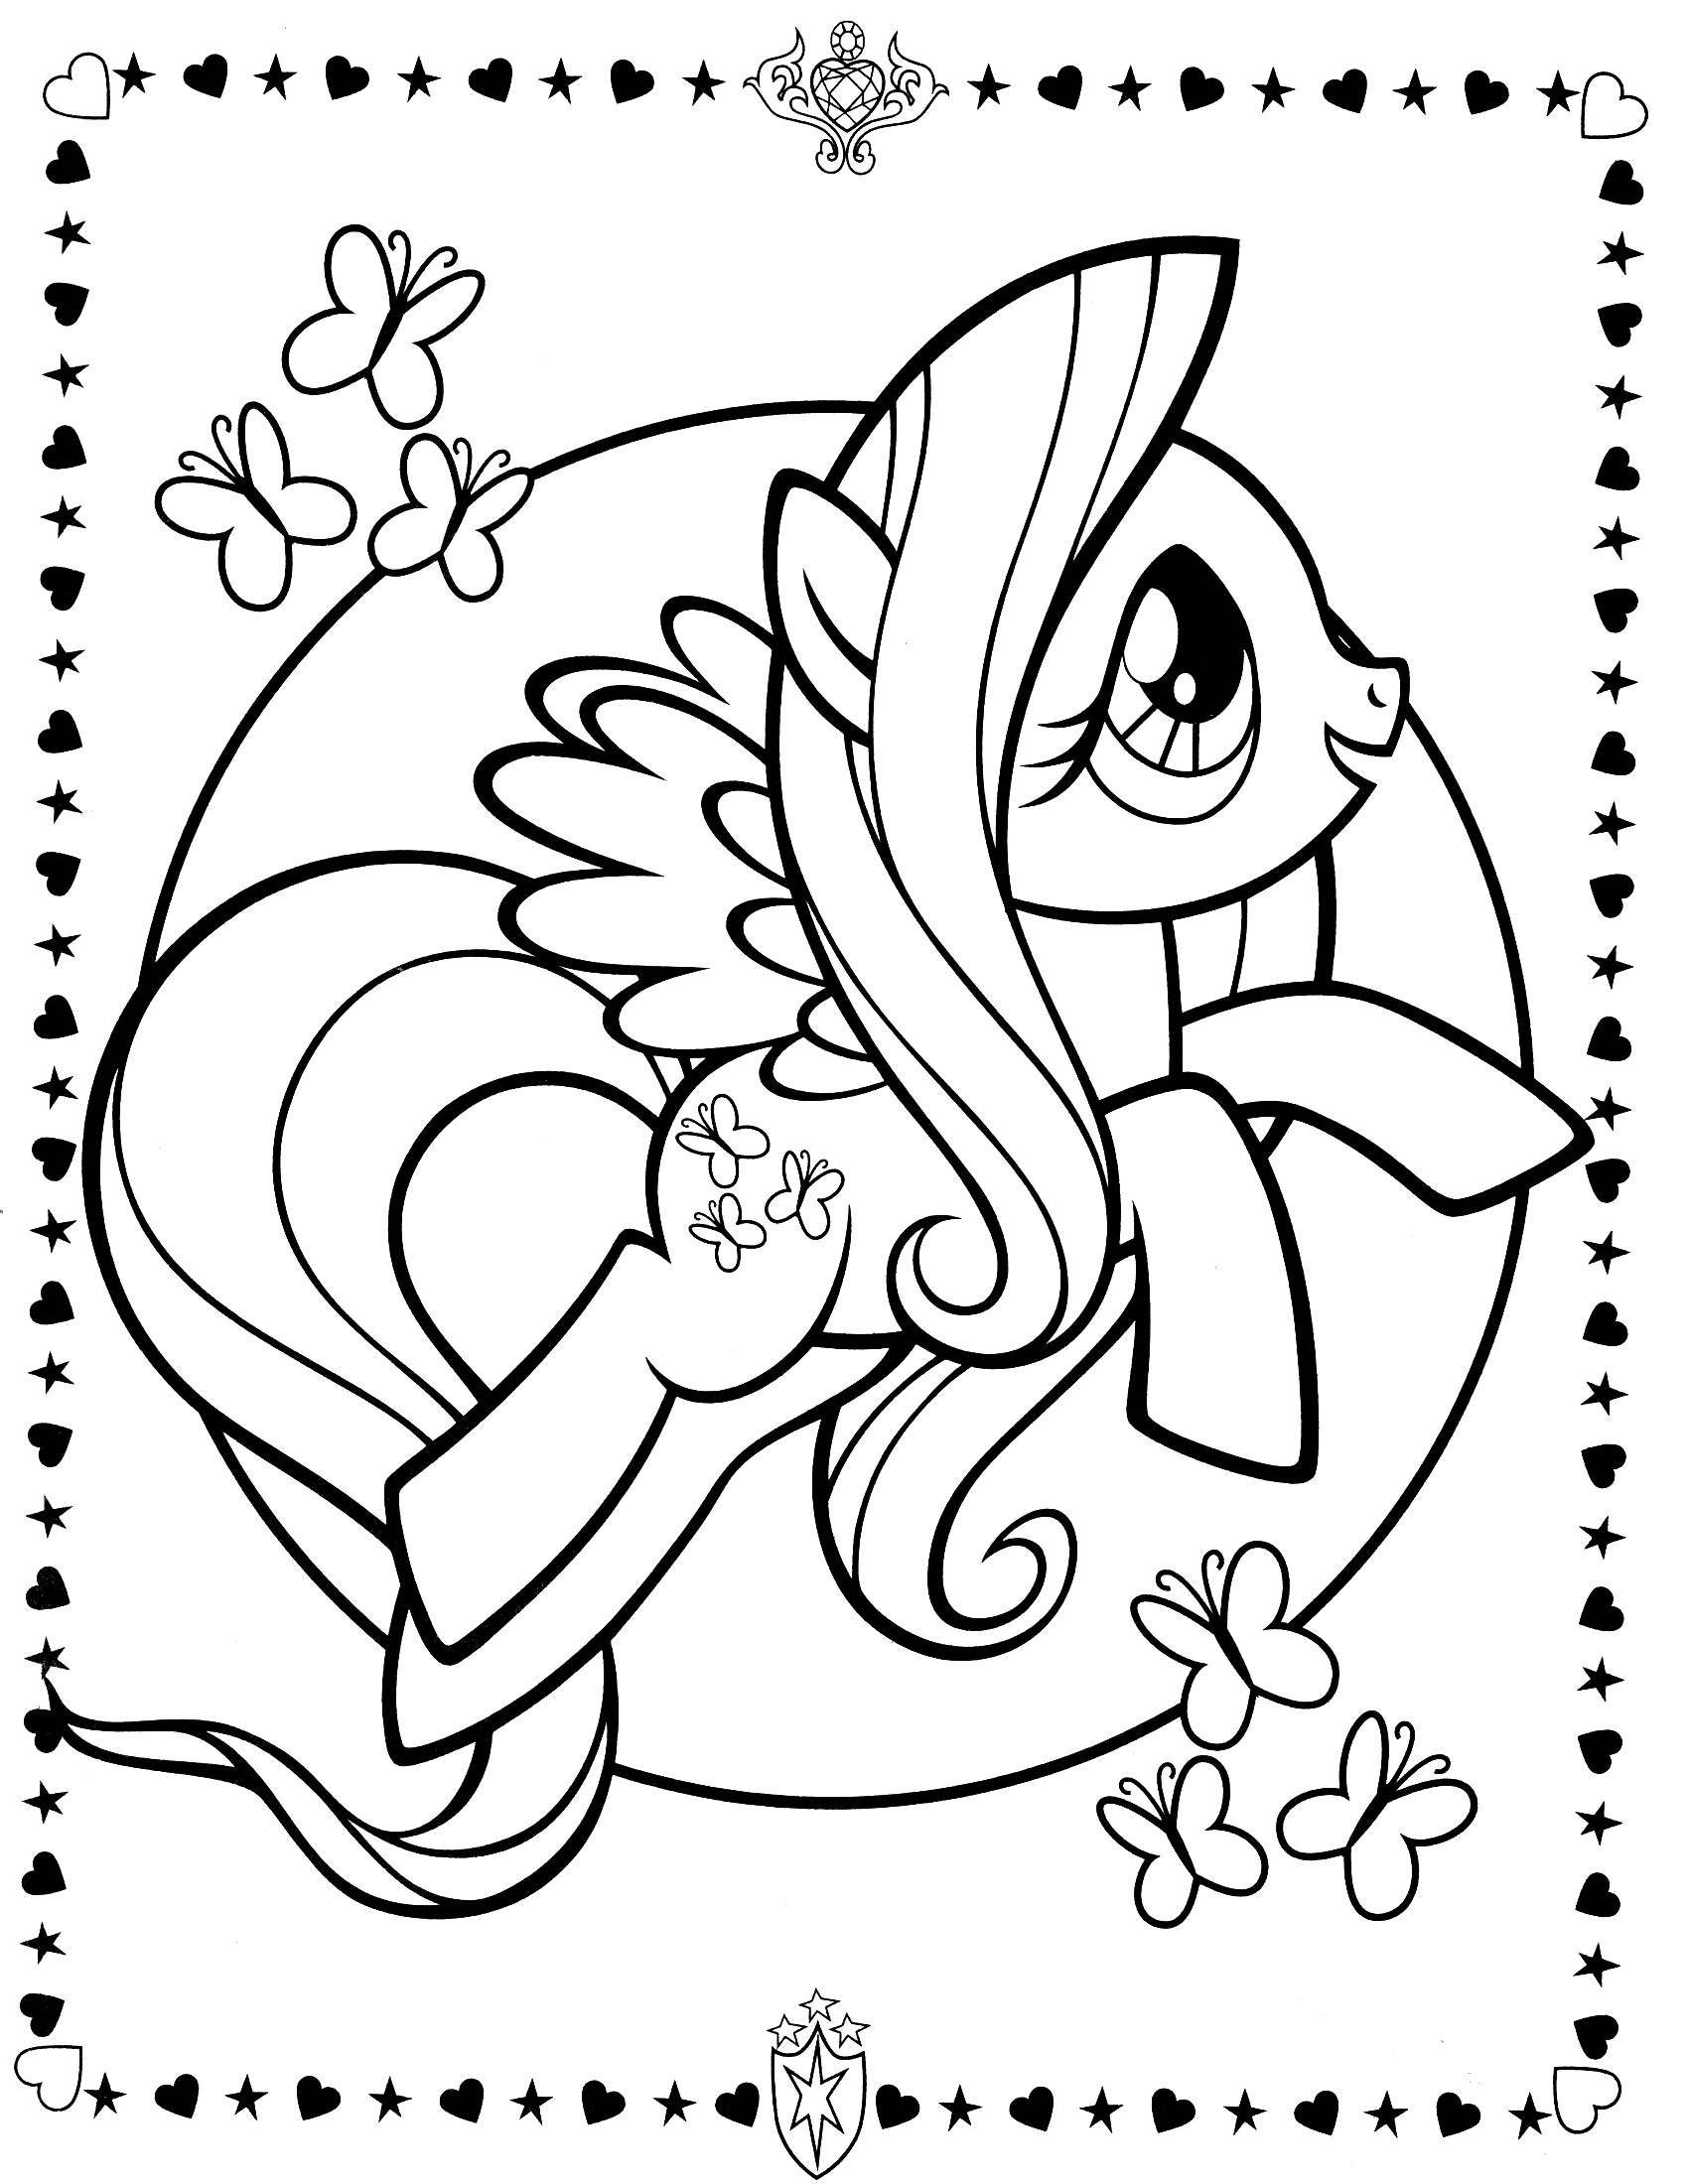 Dibujos Para Colorear De Rarity De My also My Little Pony Coloring Pages Of Fluttershy in addition Dibujos Para Colorear De La Princesa moreover Princesse Celestia together with Characters fluttershy. on princess celestia and luna